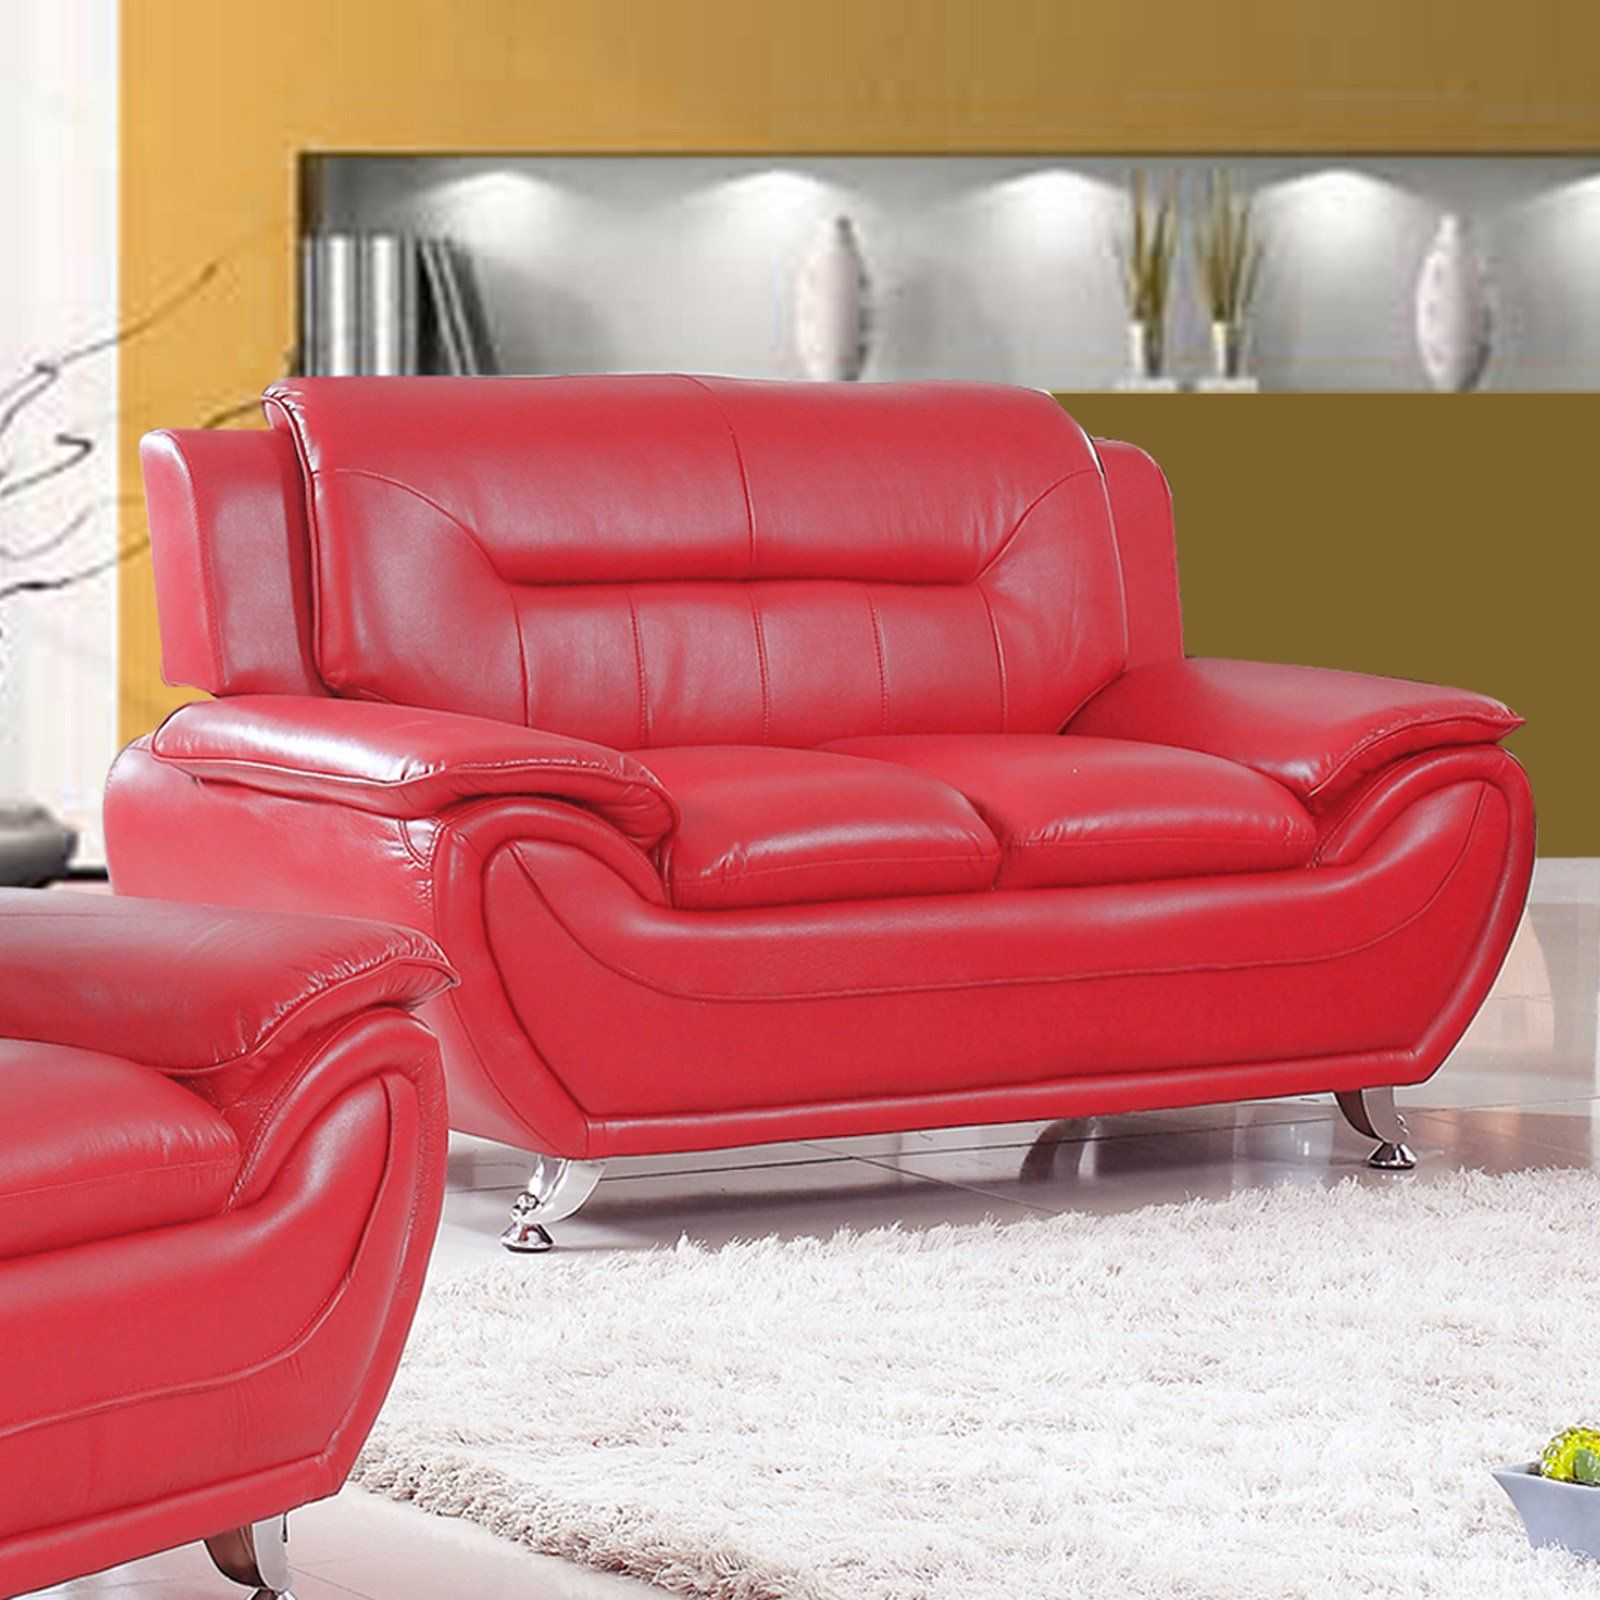 Swell Us Livings Anika Faux Leather Modern Loveseat Red Products Evergreenethics Interior Chair Design Evergreenethicsorg